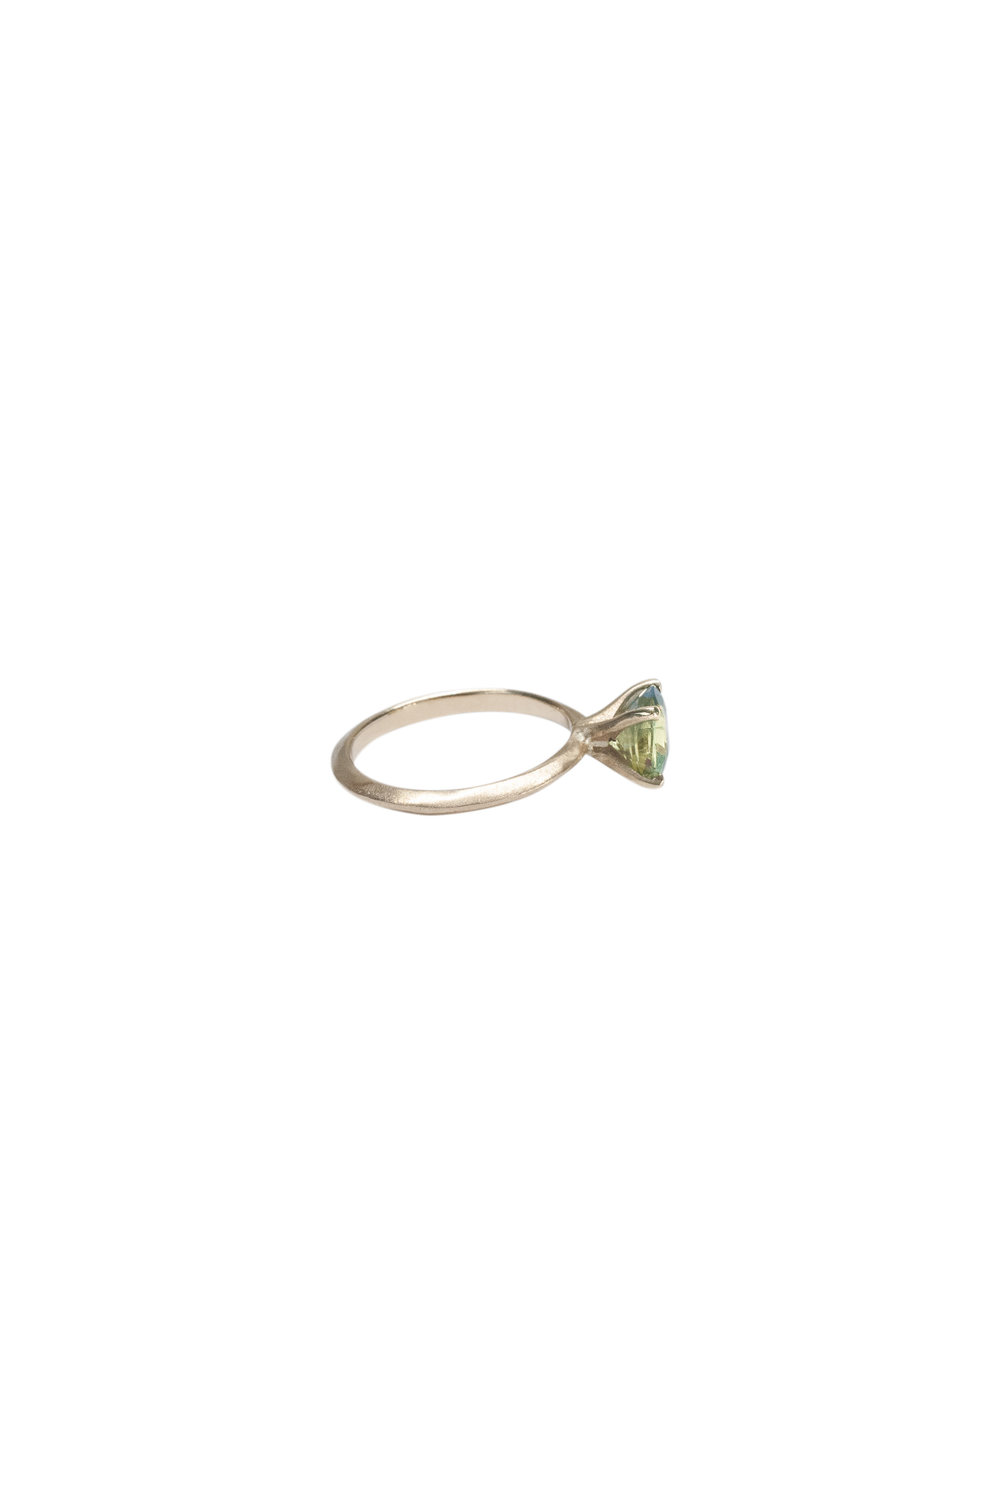 BR213- The Sage Solitare 1.72CT.jpg